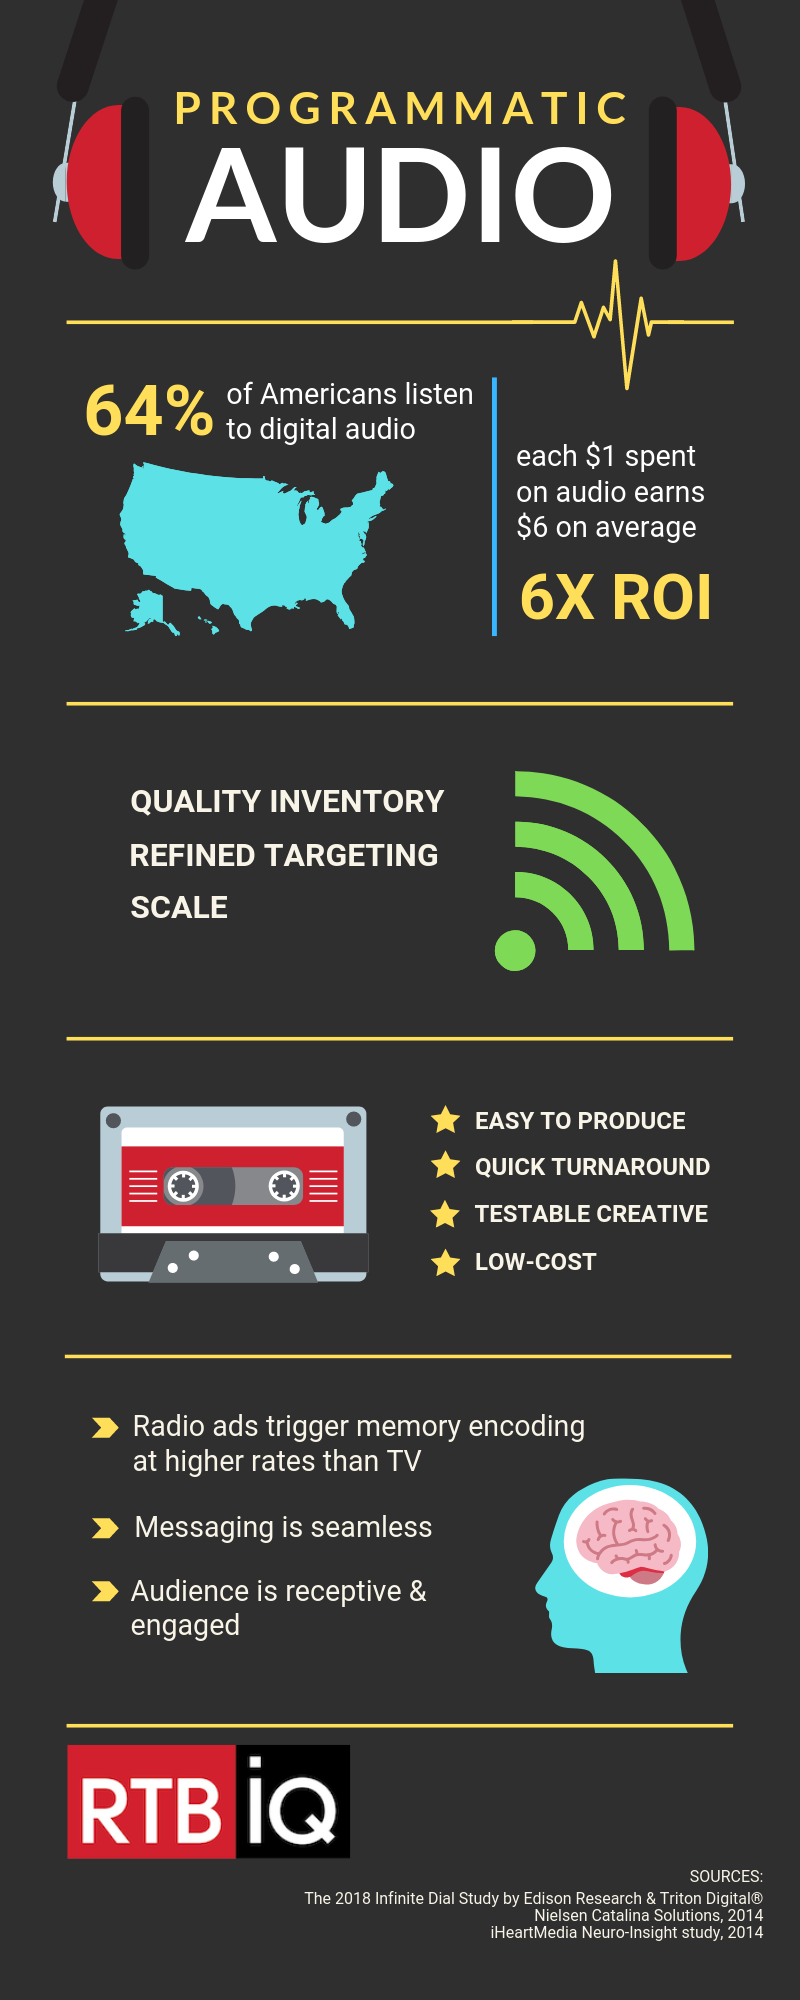 """Programmatic audio infographic with text overlay """"64% of Americans listen to digital audio; each $1 spent on audio ears $6 on average 6x ROI; quality inventory refined targeting scale; easy to produce, quick turnaround, testable creative, low-cost; radio ads trigger memory encoding at higher rates than TV, messaging is seamless, audience is receptive and engaged"""""""